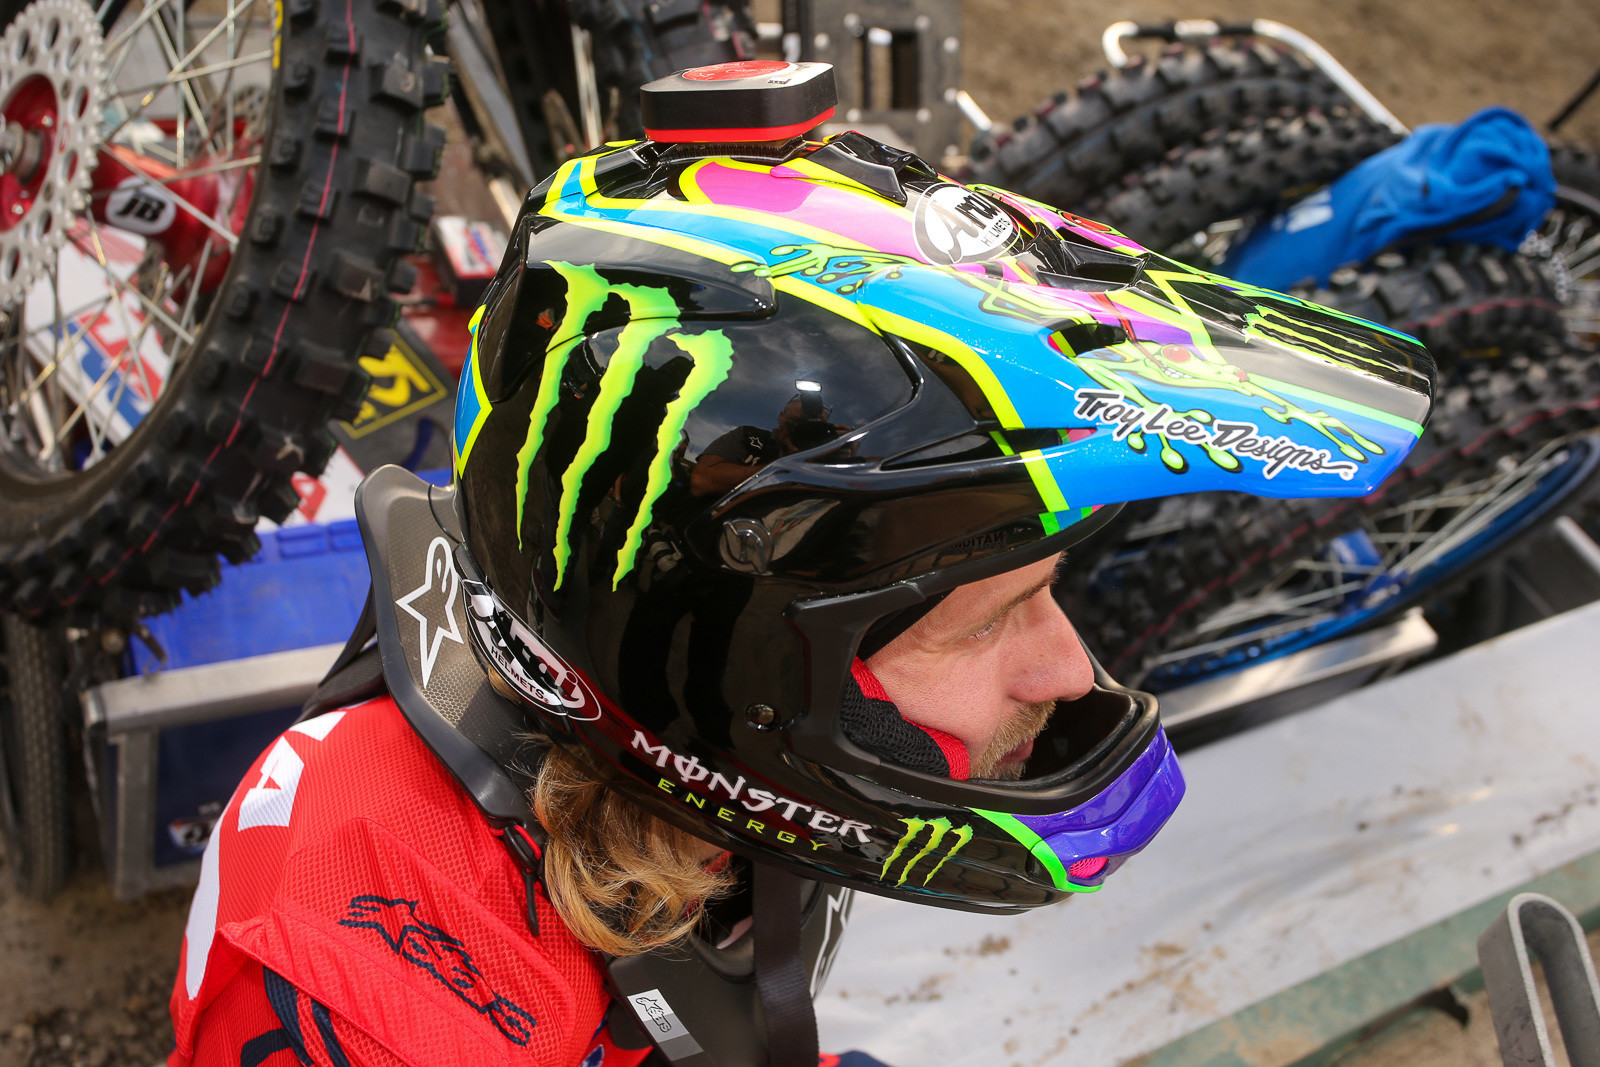 TLD stuff also gets turned into production helmets for other brands, like this one for Justin Barcia.